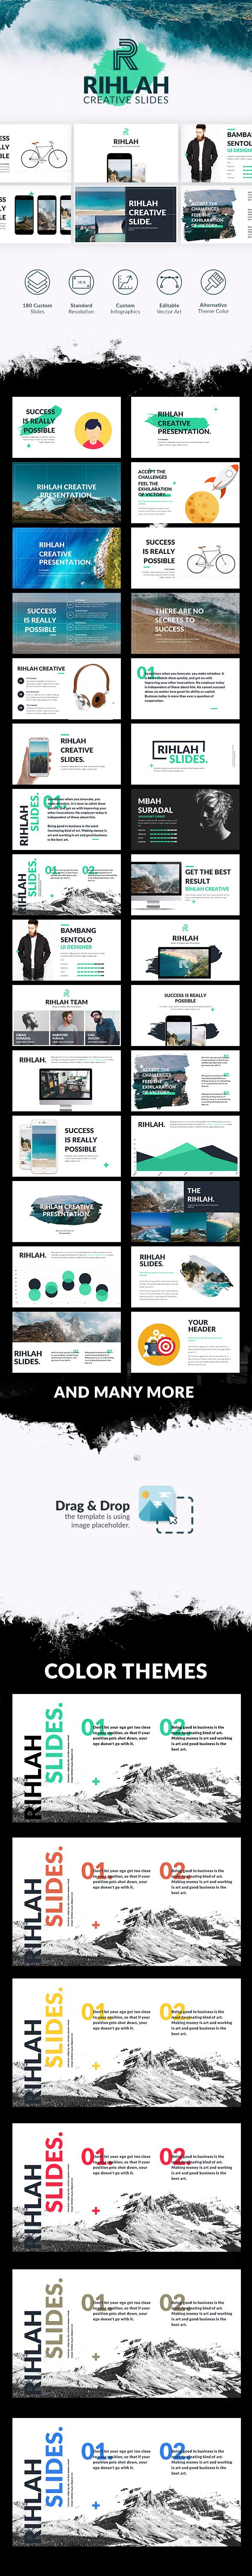 Rihlah | Powerpoint Template on Behance